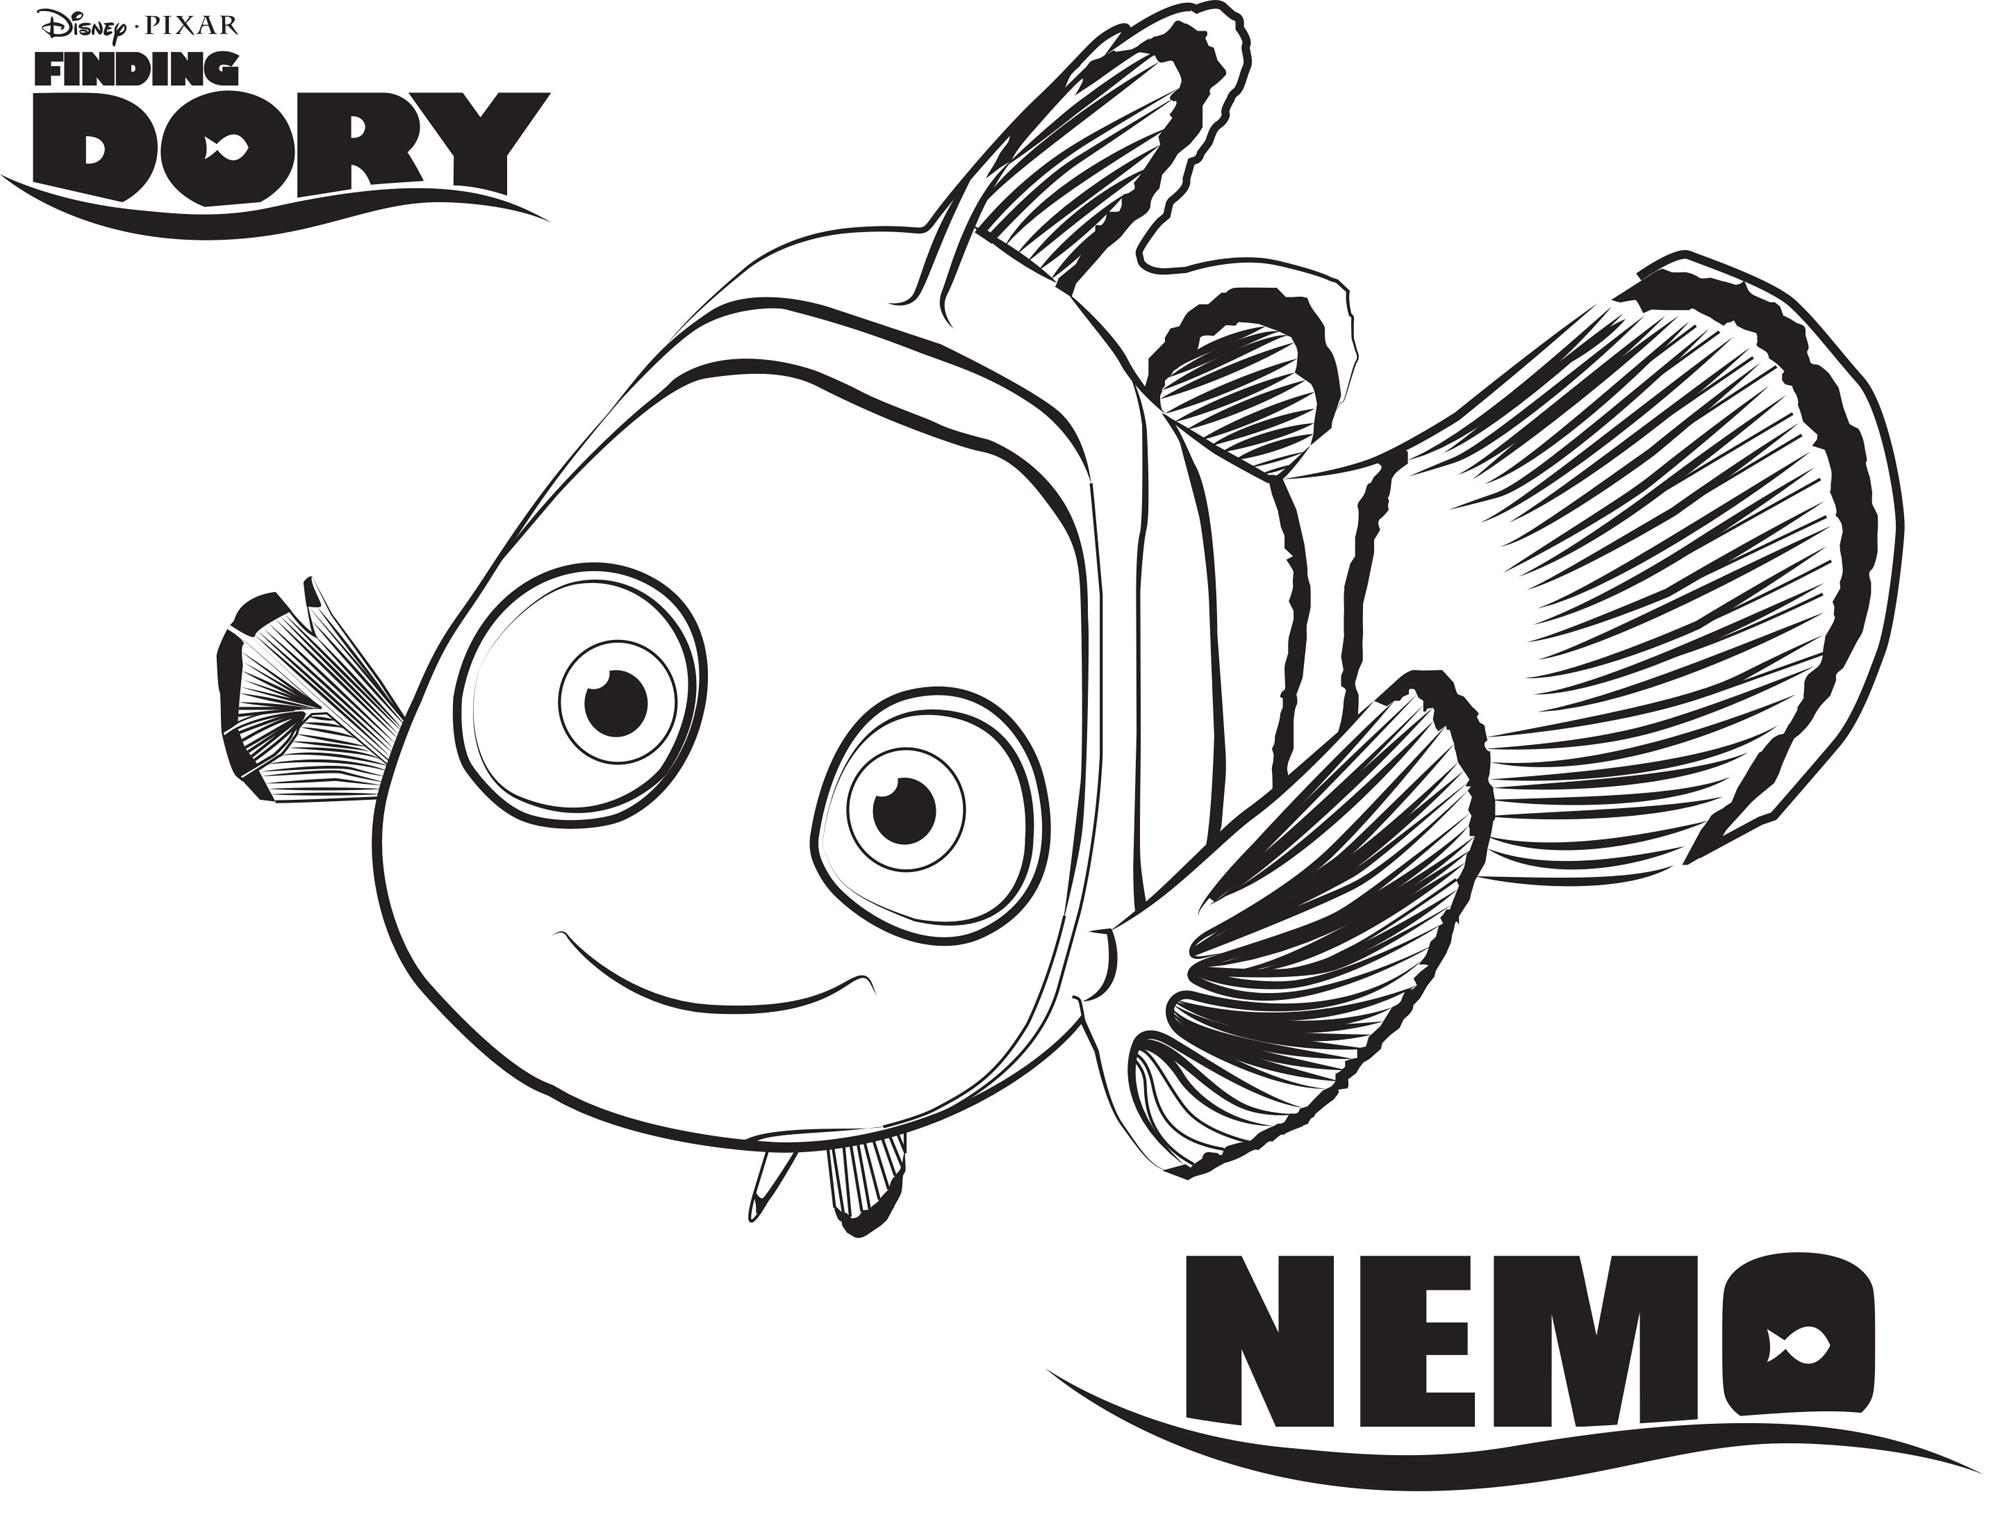 Nemo – Finding Dory Coloring Pages | Disney Movies List